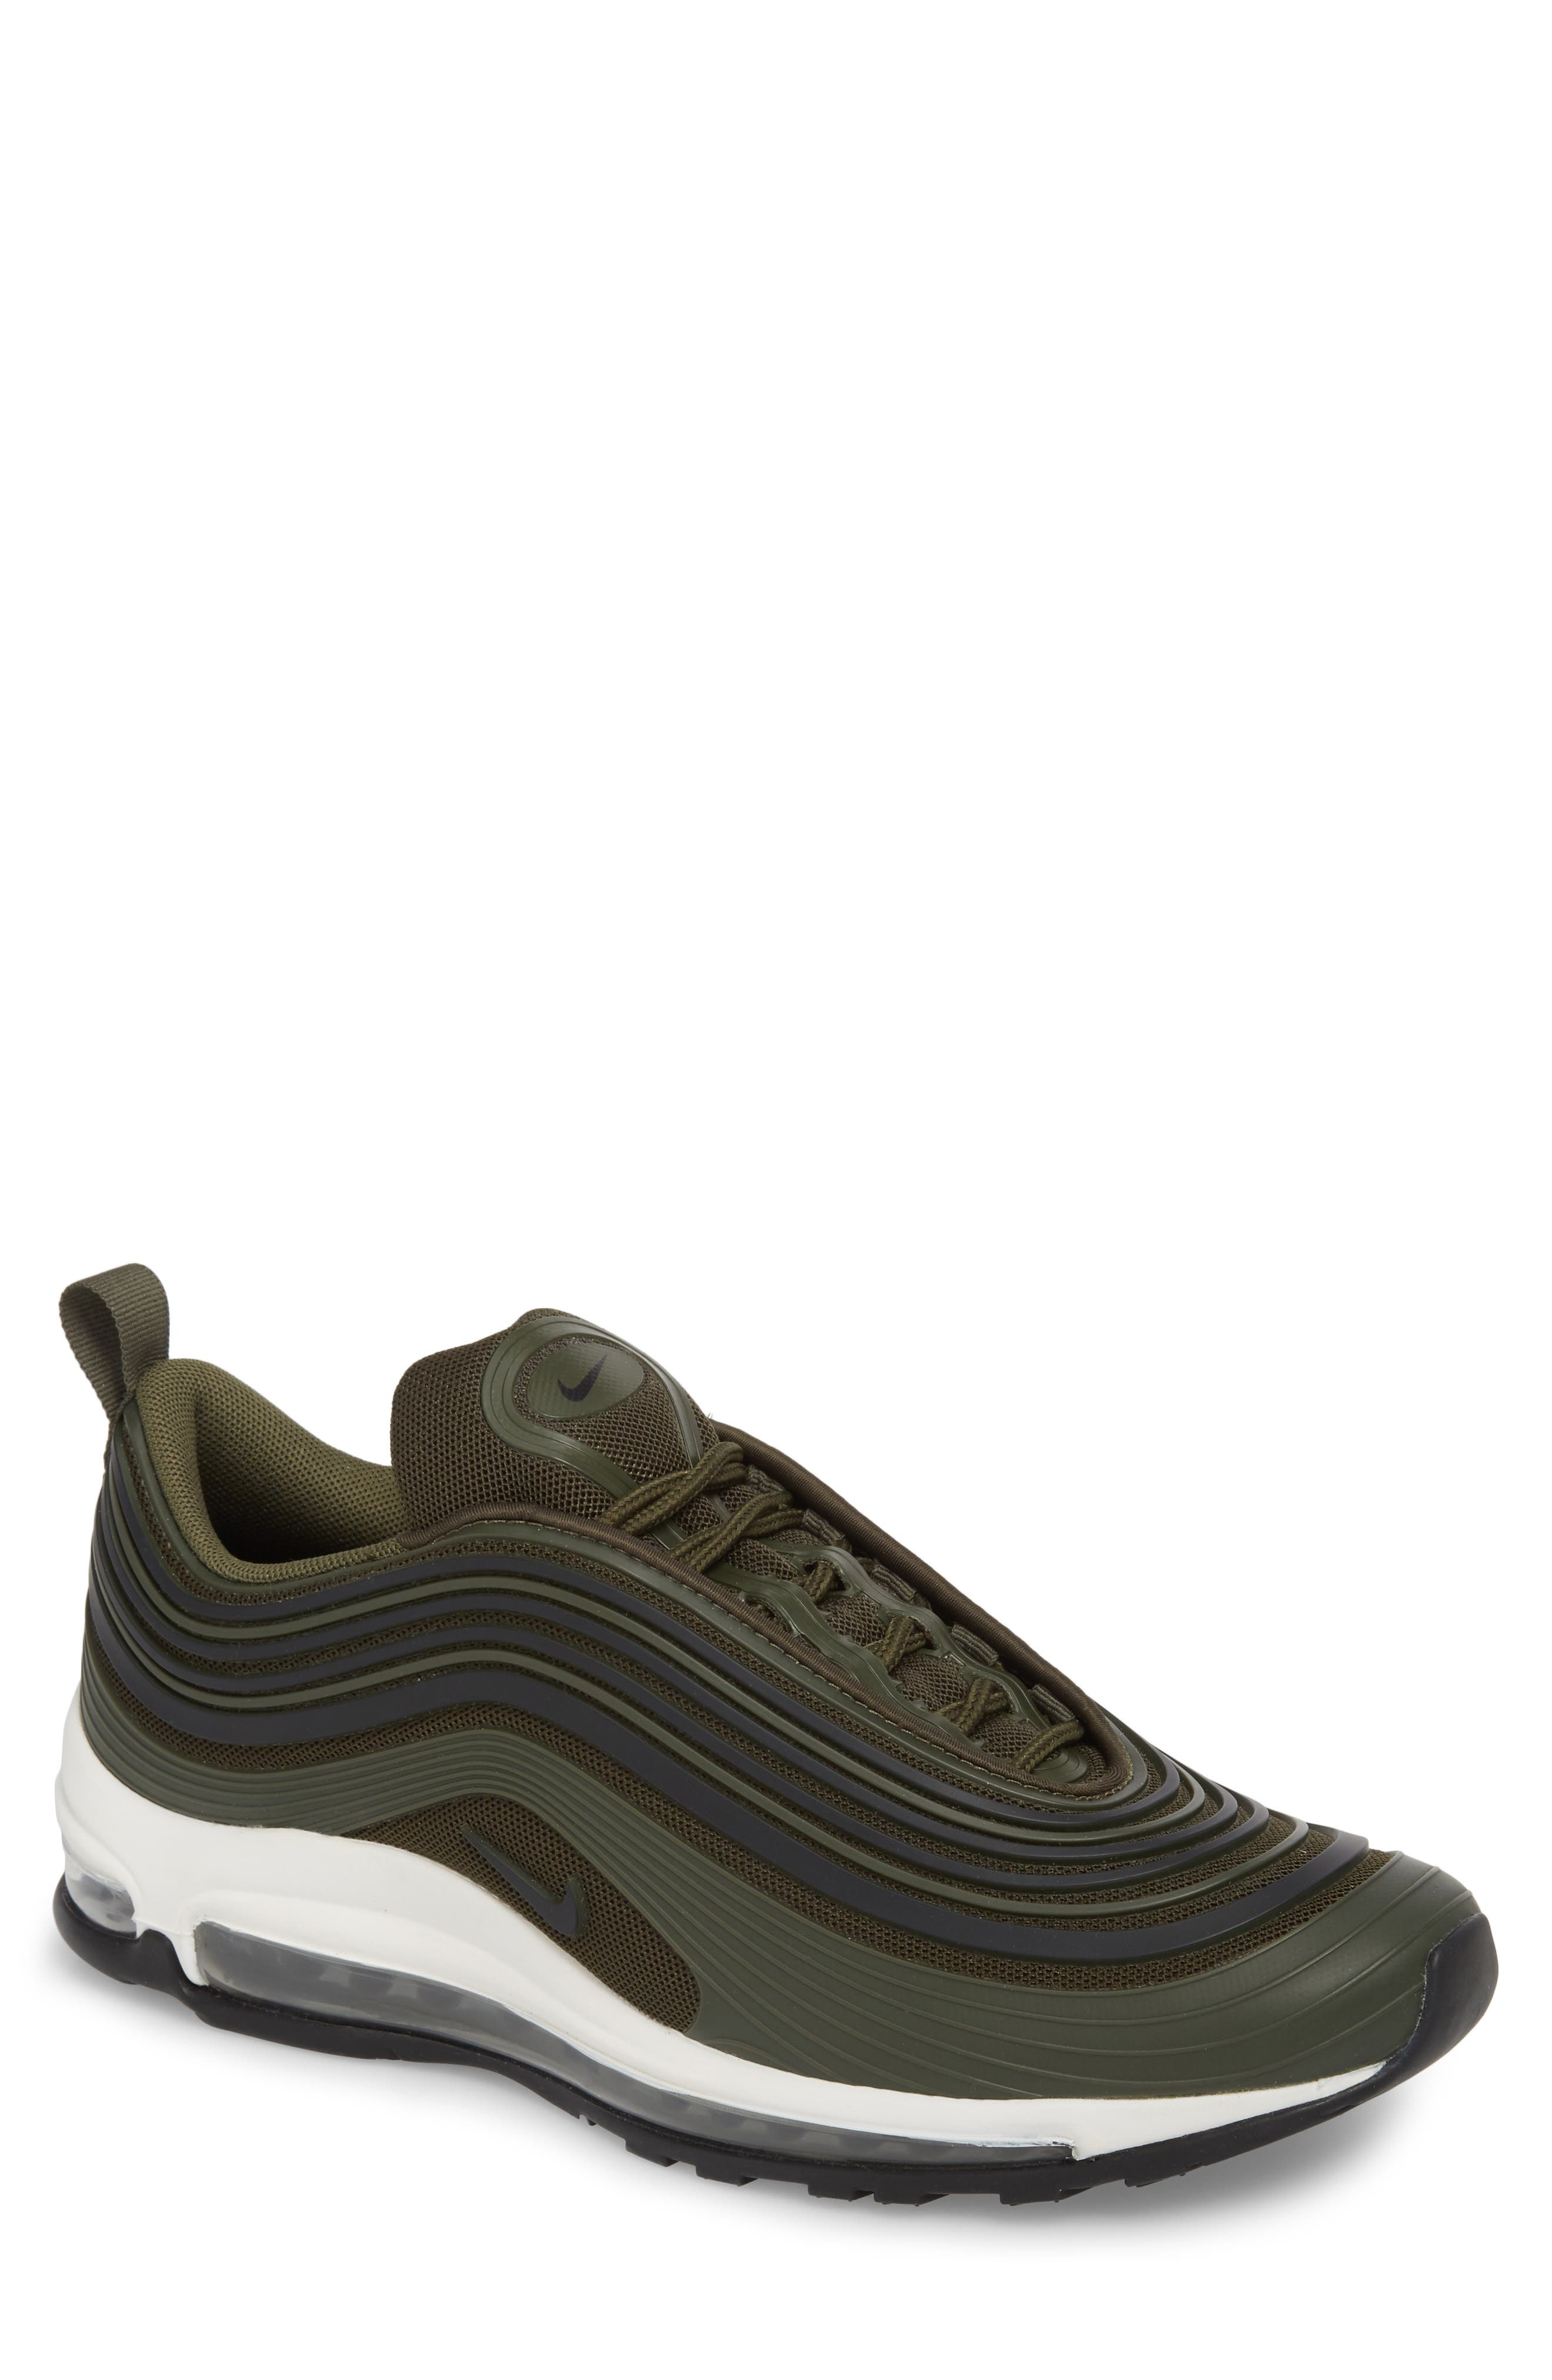 Nike Air Max 97 Ultralight 2017 Sneaker (Men)